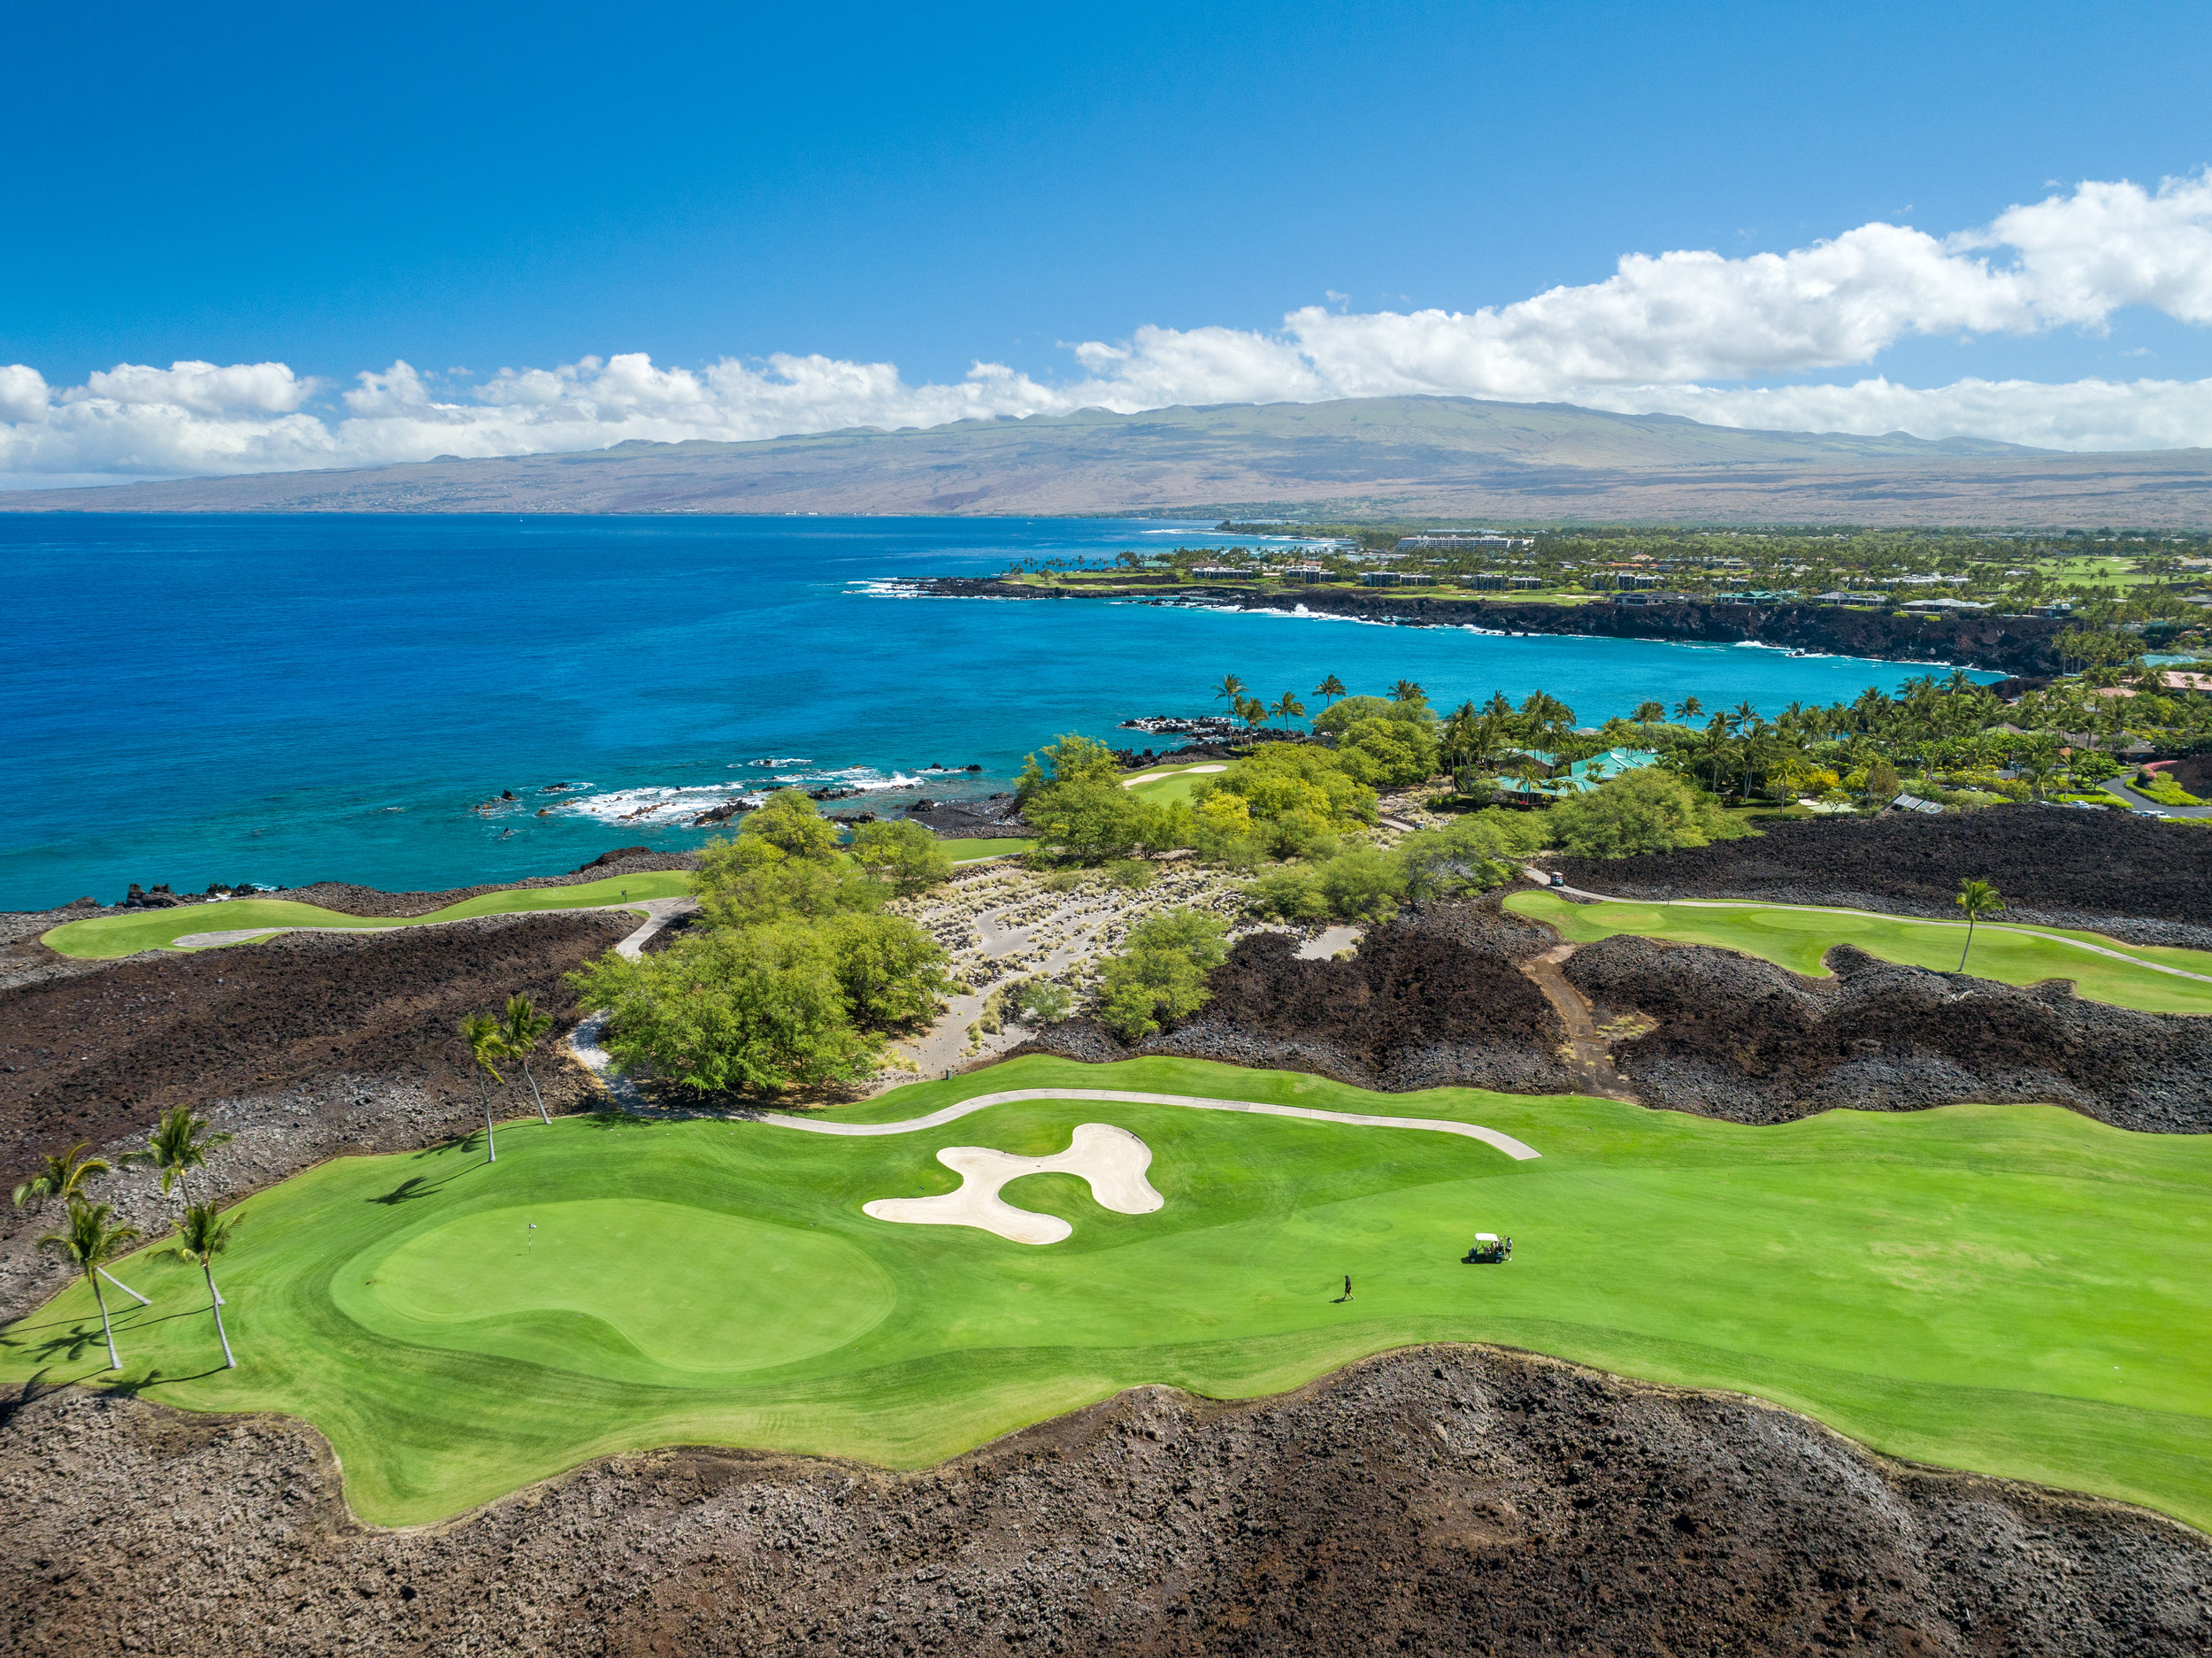 Green fairways against a dramatic black lava backdrop, with ocean and mountain views, as seen from the rear lots at Ke Kailani.